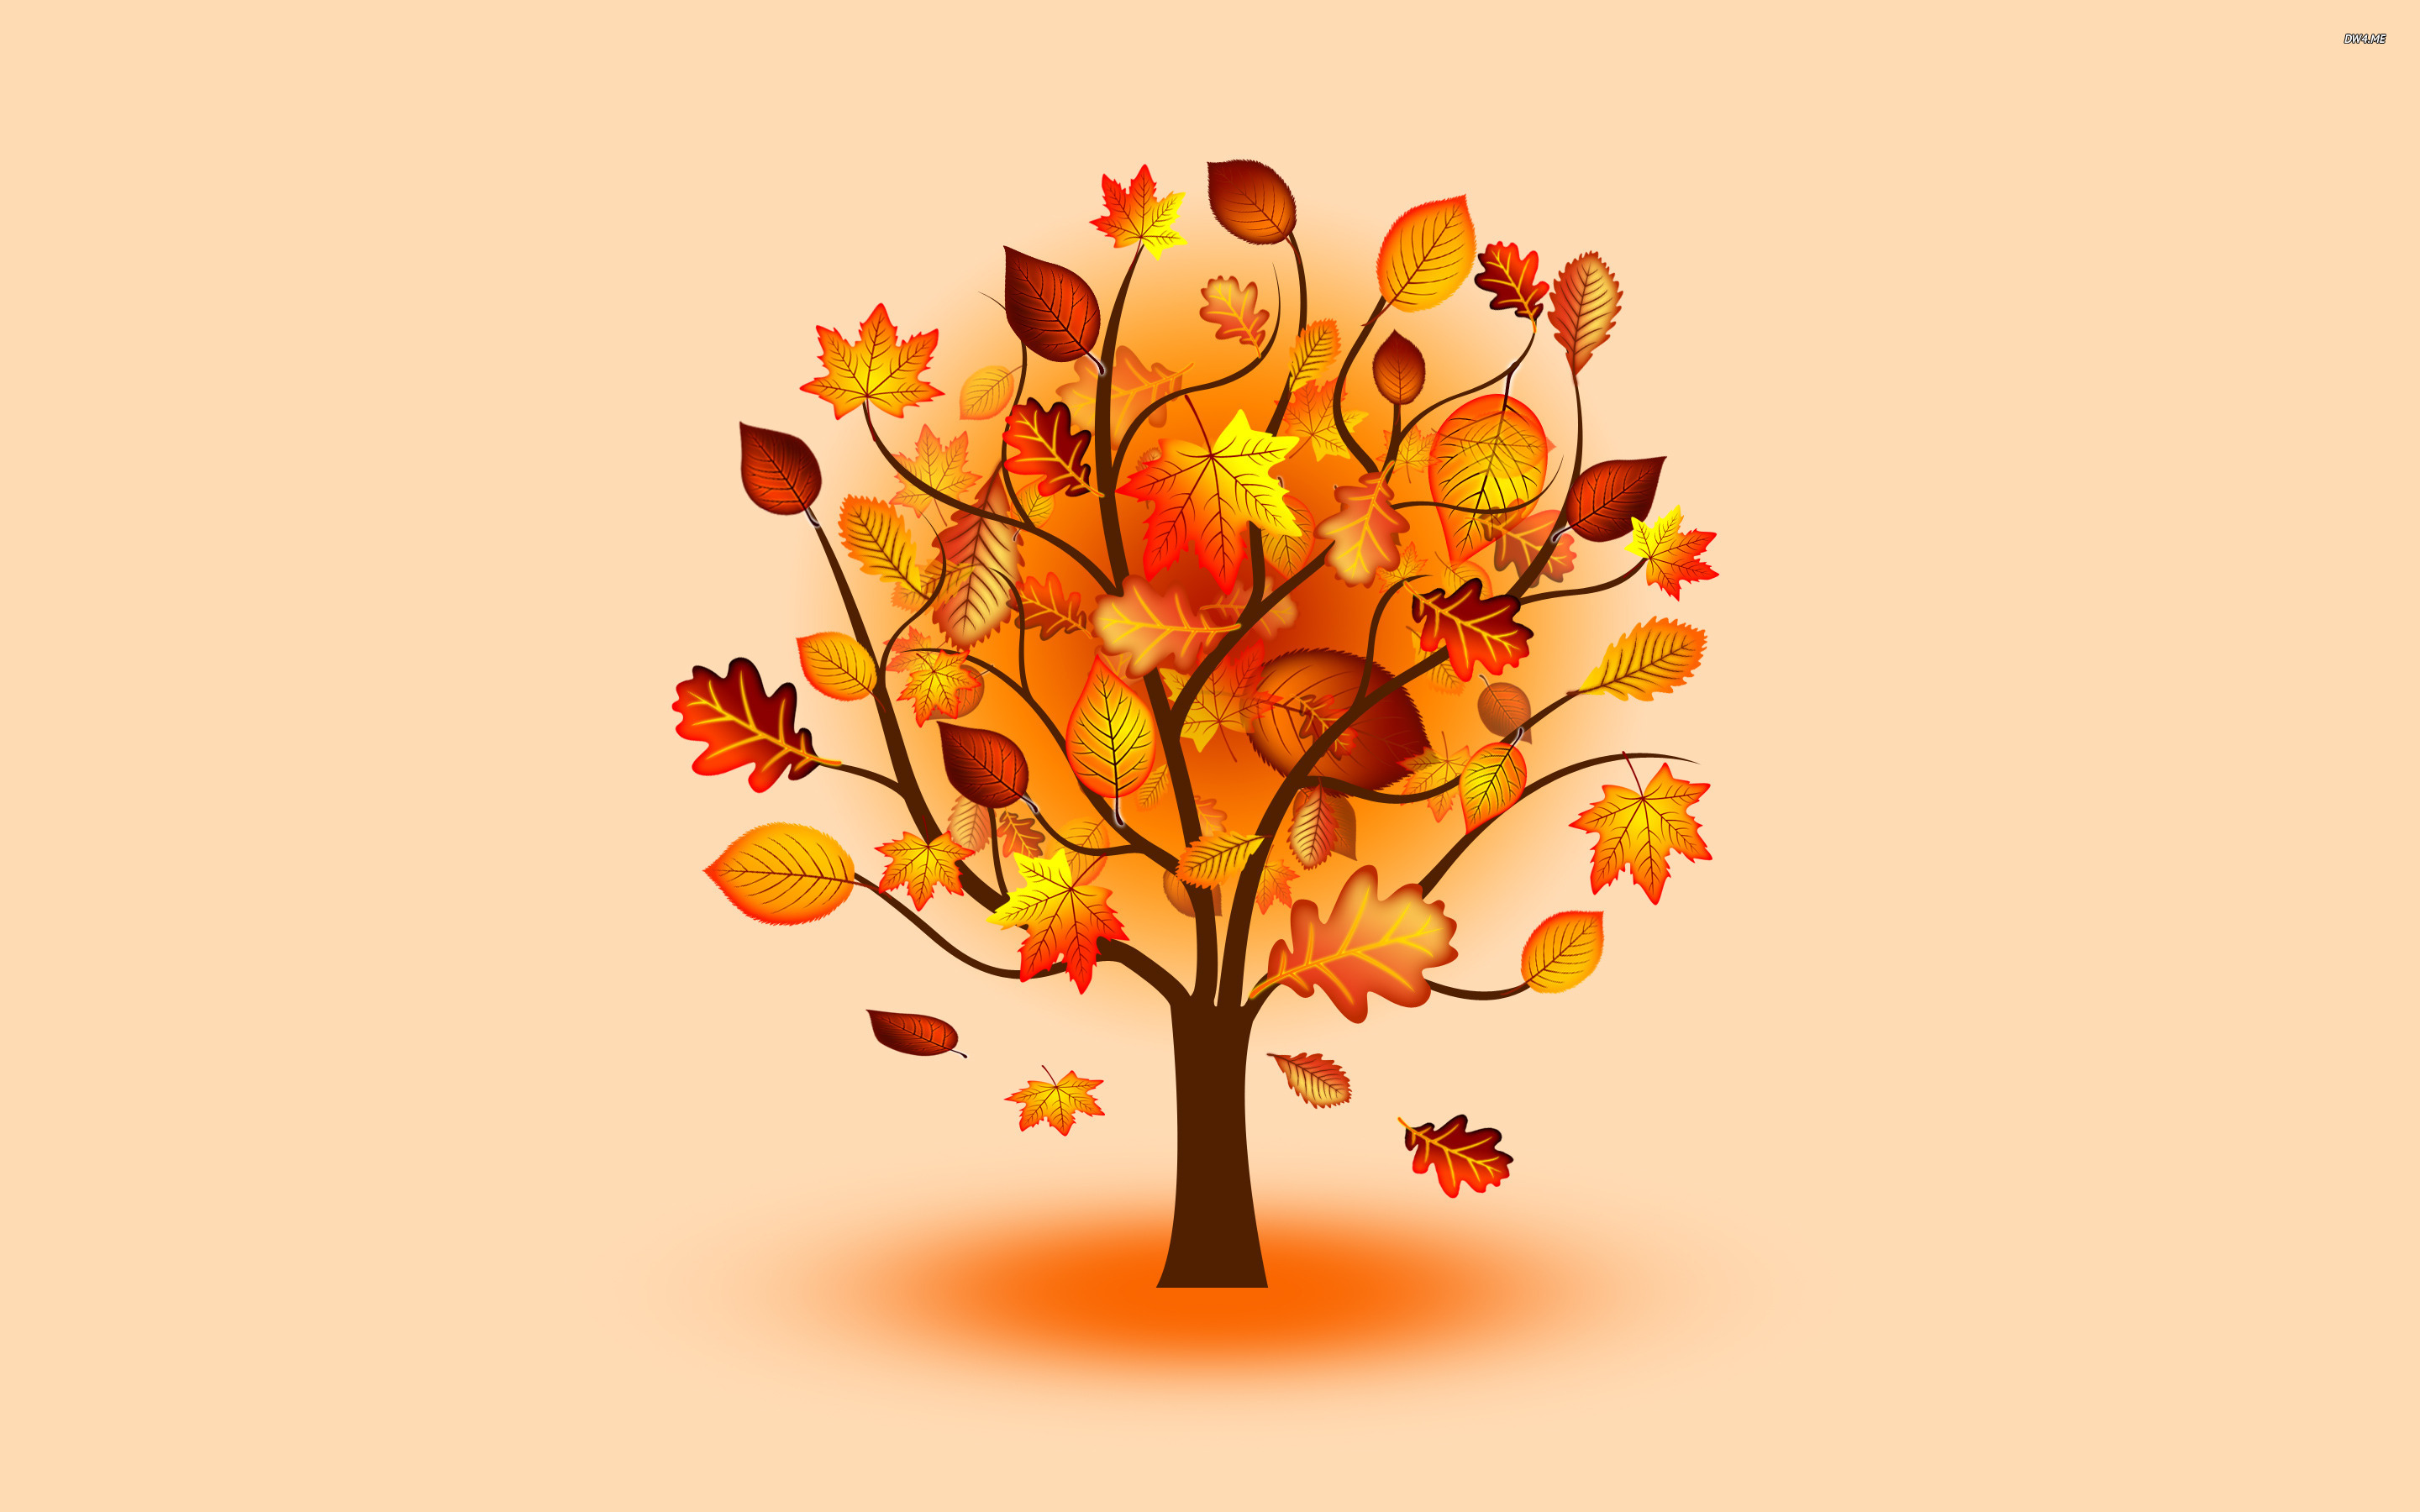 HQ Wallpapers Plus provides different size of Autumn Trees Clip.